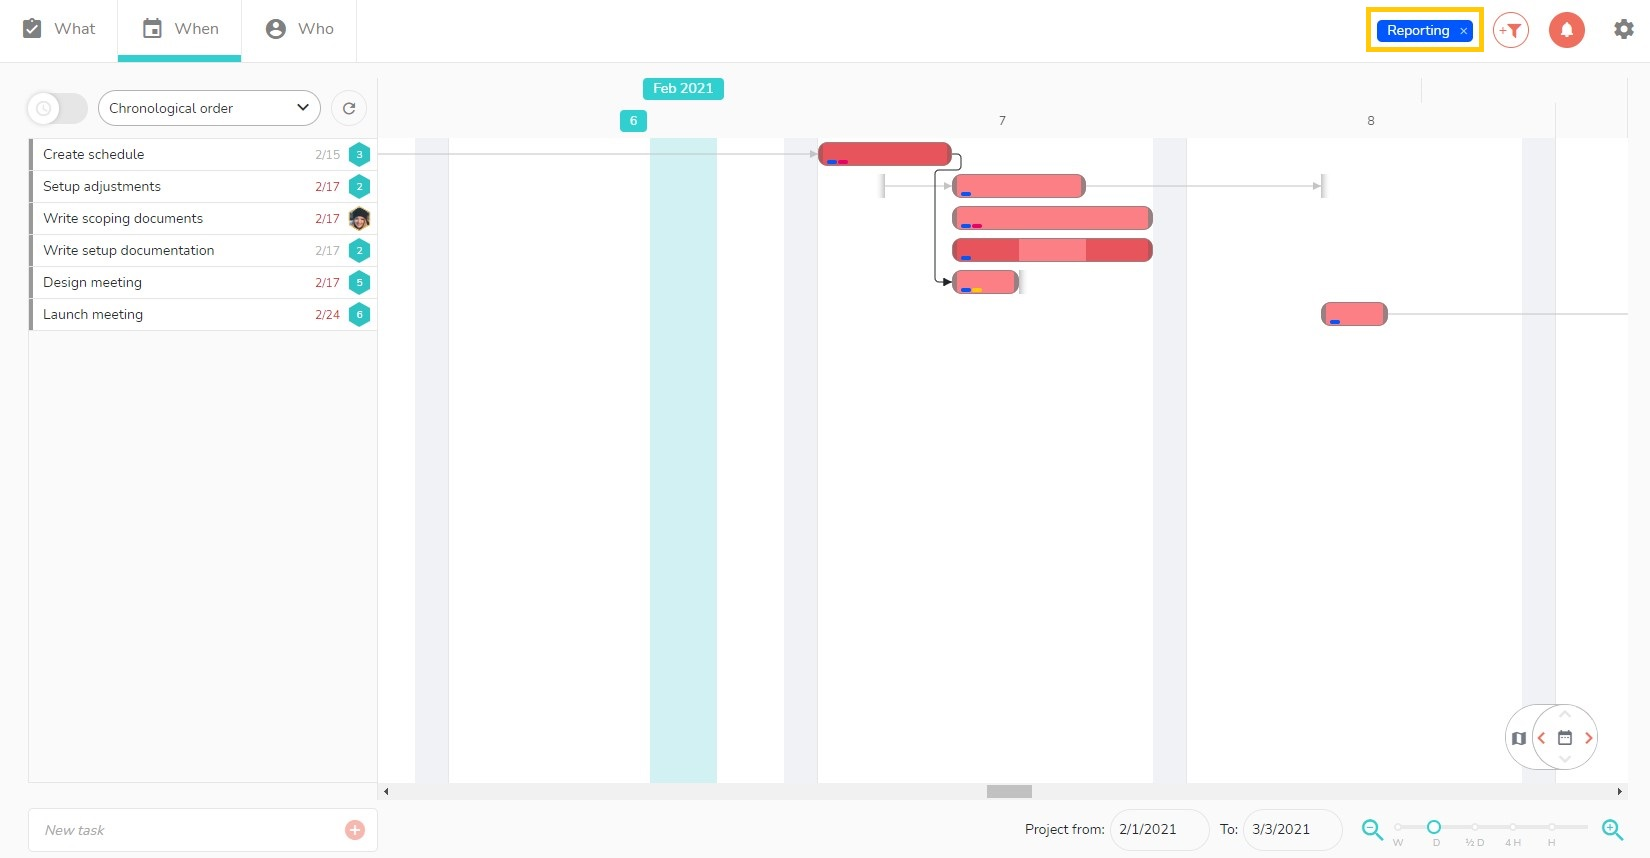 Display the tasks you wish to see on your project with the filter option.